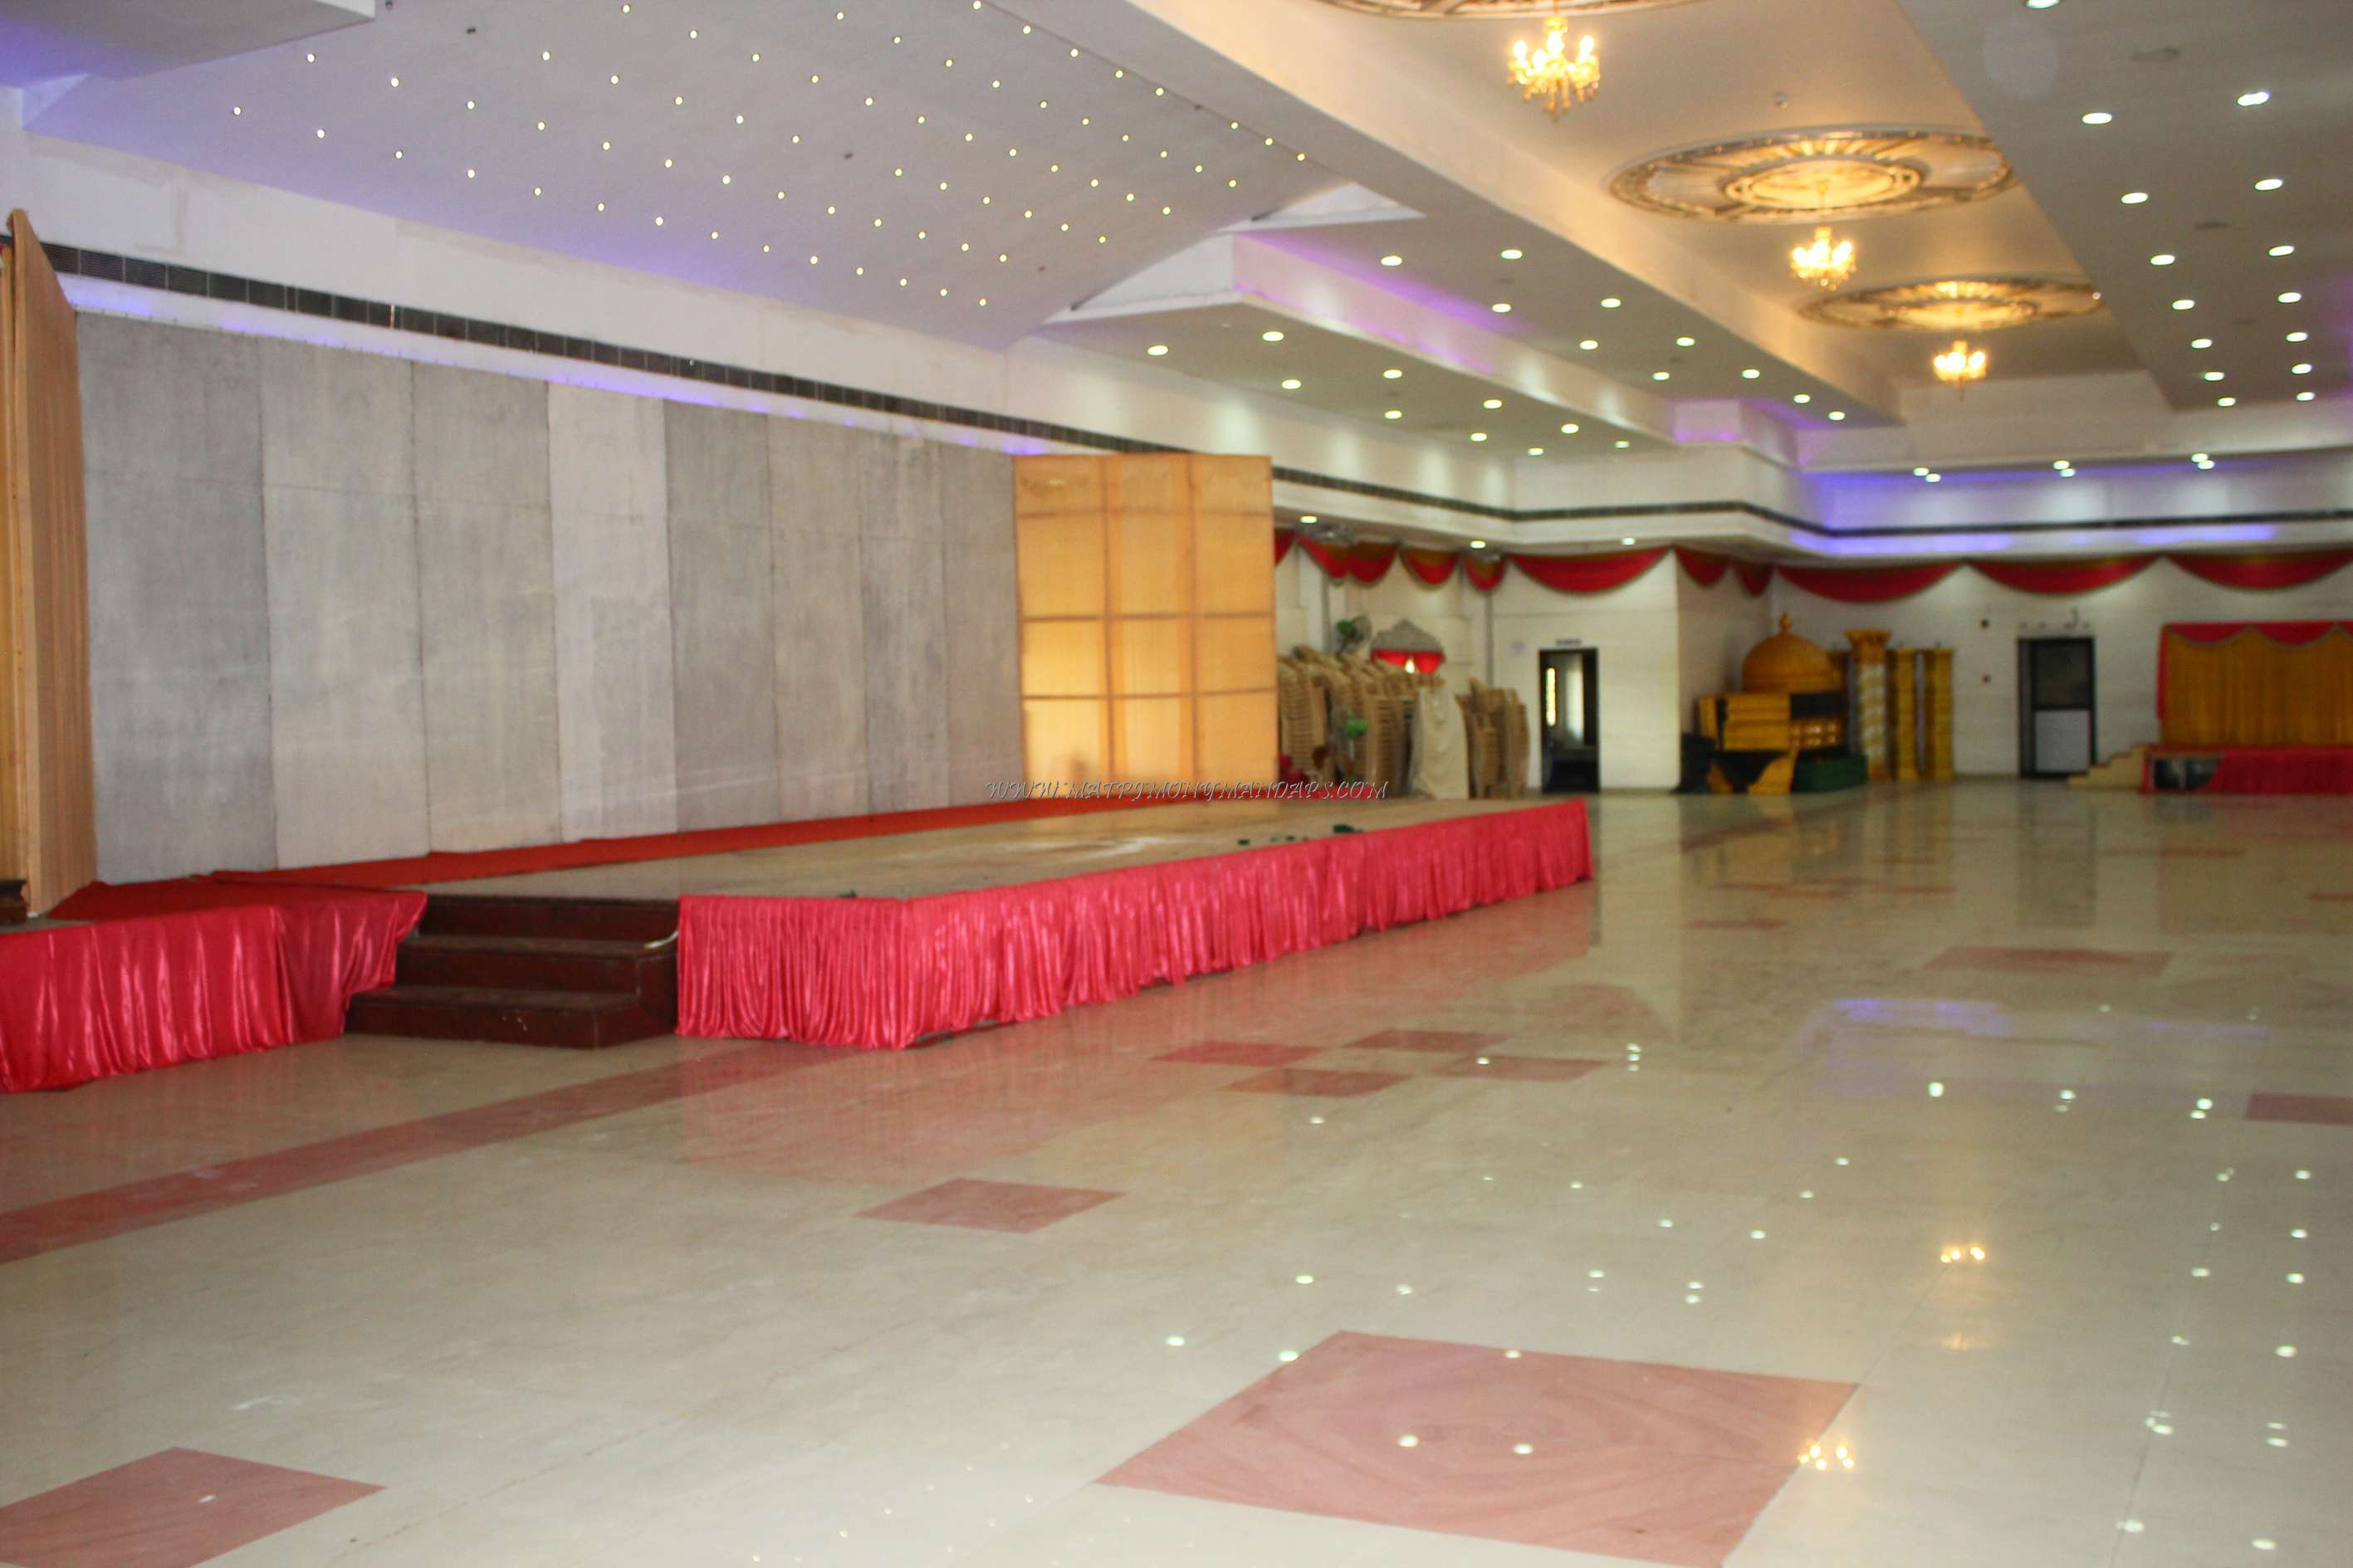 Find the availability of the EVP Rajeshwari Marriage Pale (A/C) in Poonamallee, Chennai and avail special offers